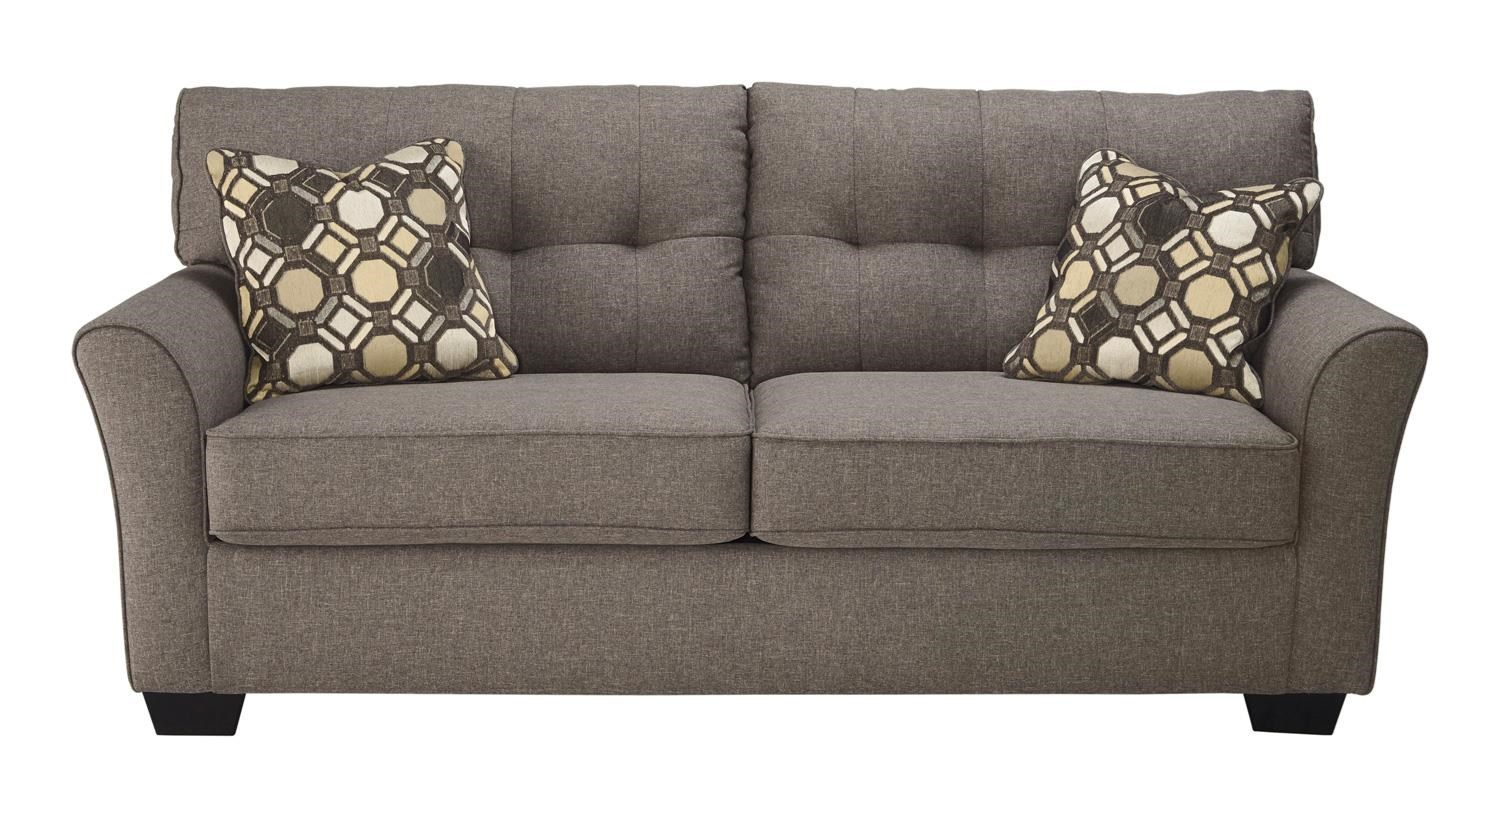 Signature Design By Ashley Tibbee Contemporary Sofa With